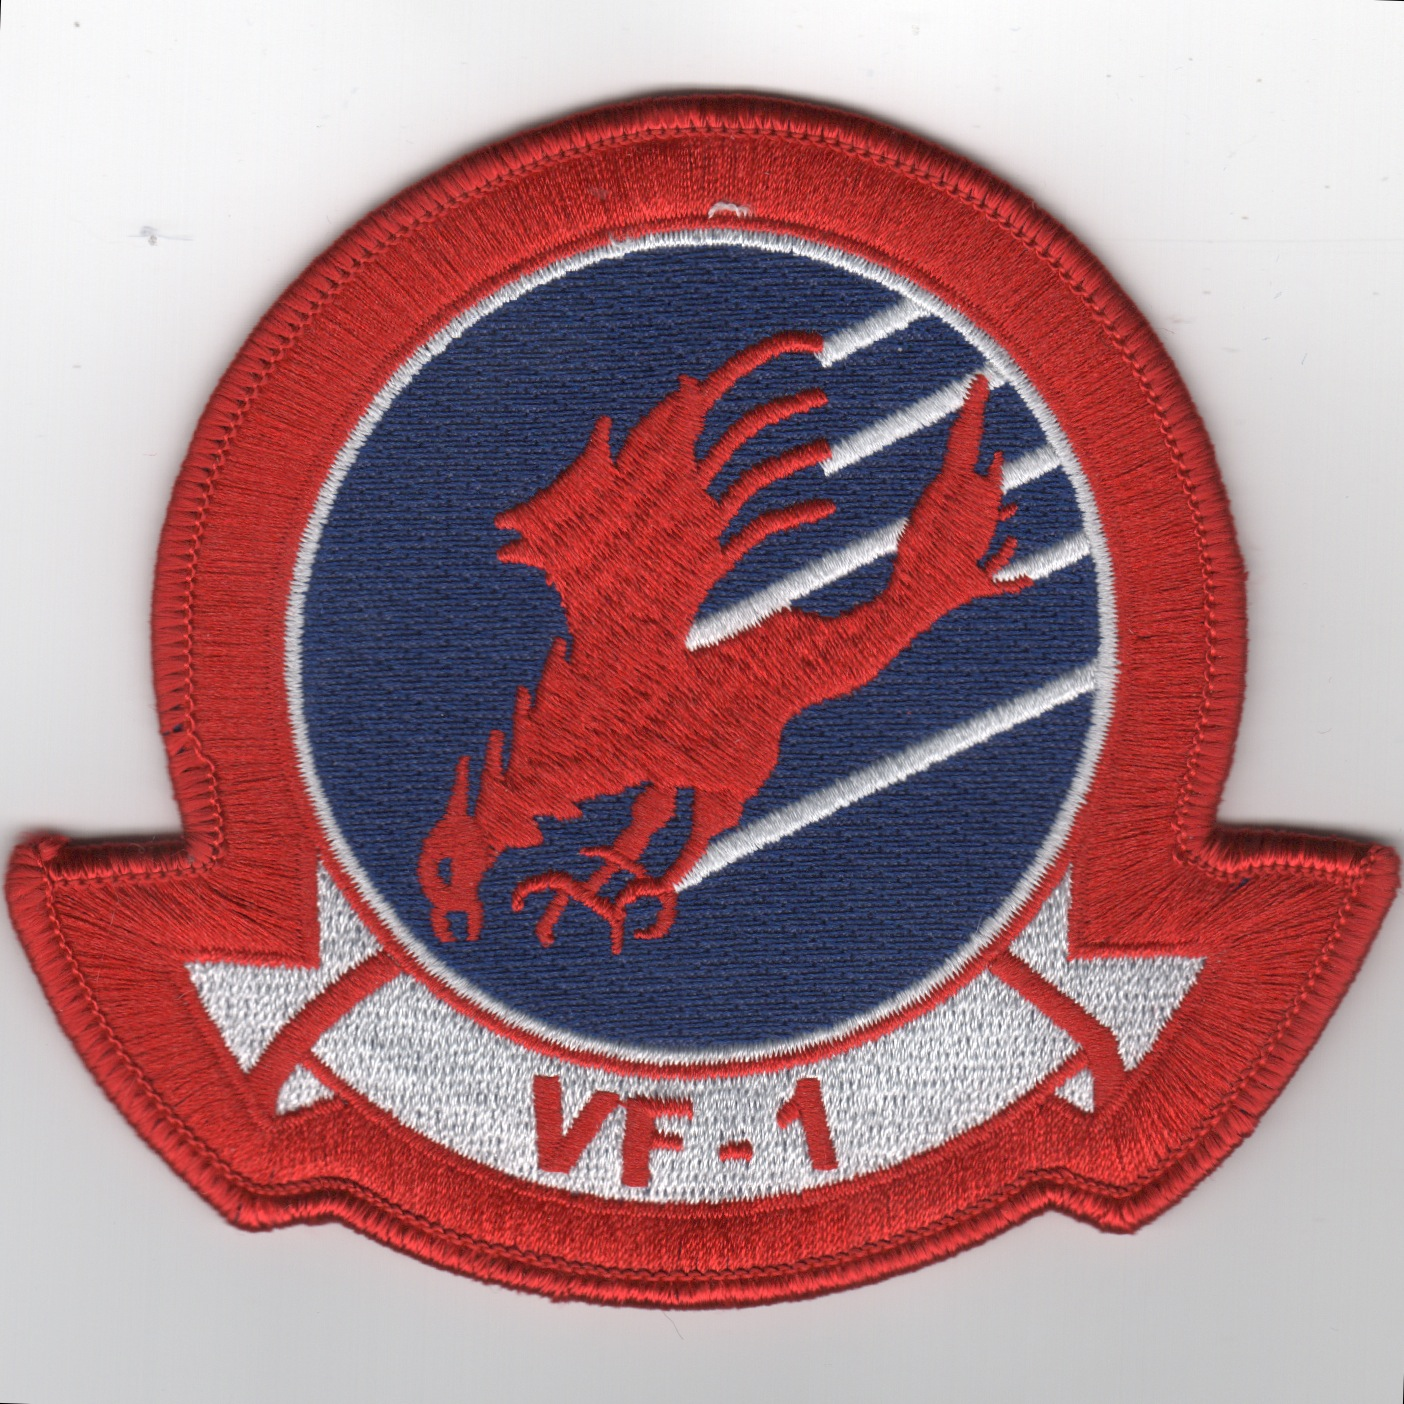 TOPGUN: VF-1 Squadron Patch (No Velcro)